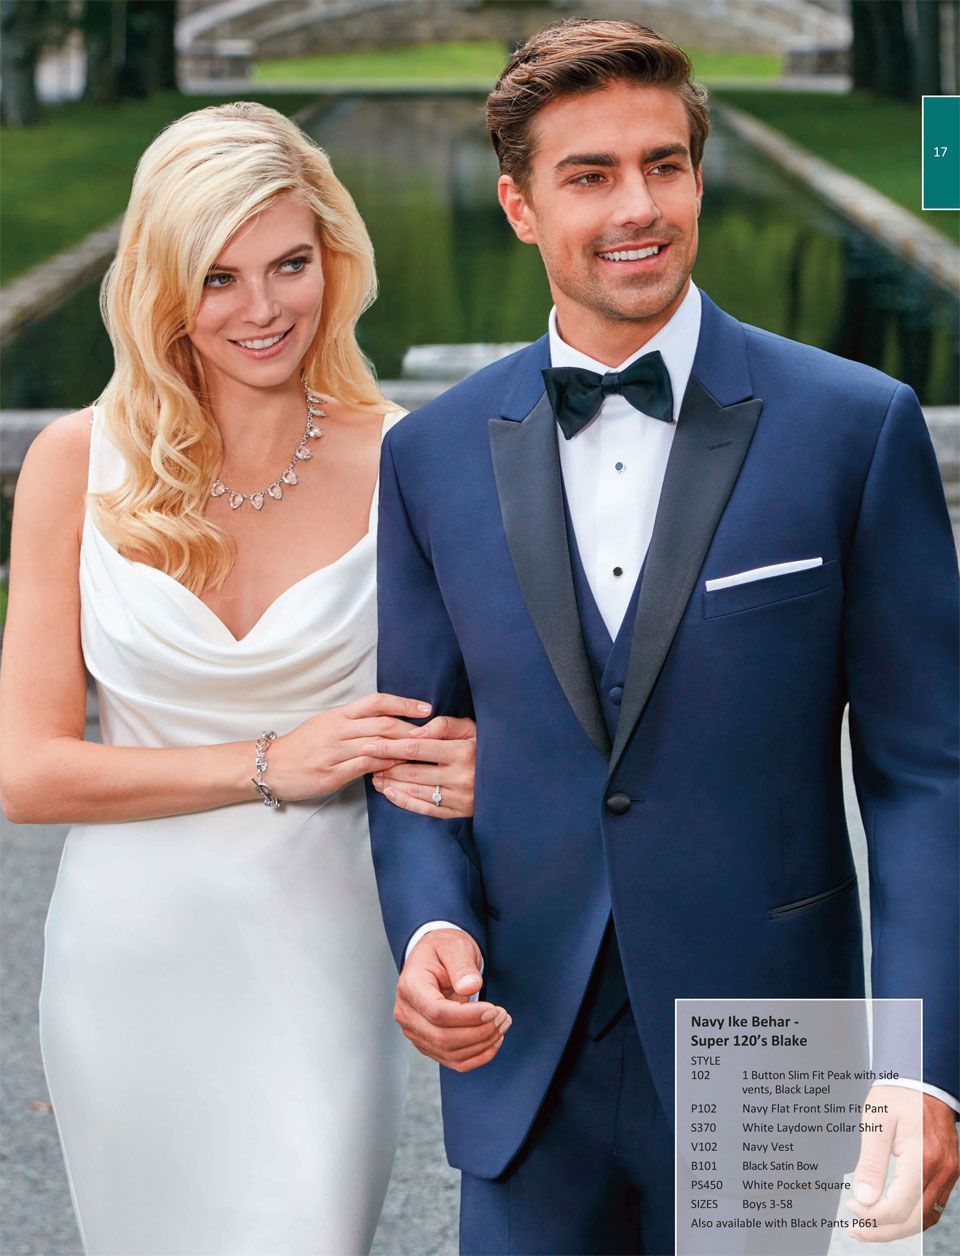 Bridal Extraordinaire Has An Expansive Collection Of Tuxedos And Suits Available For Rent